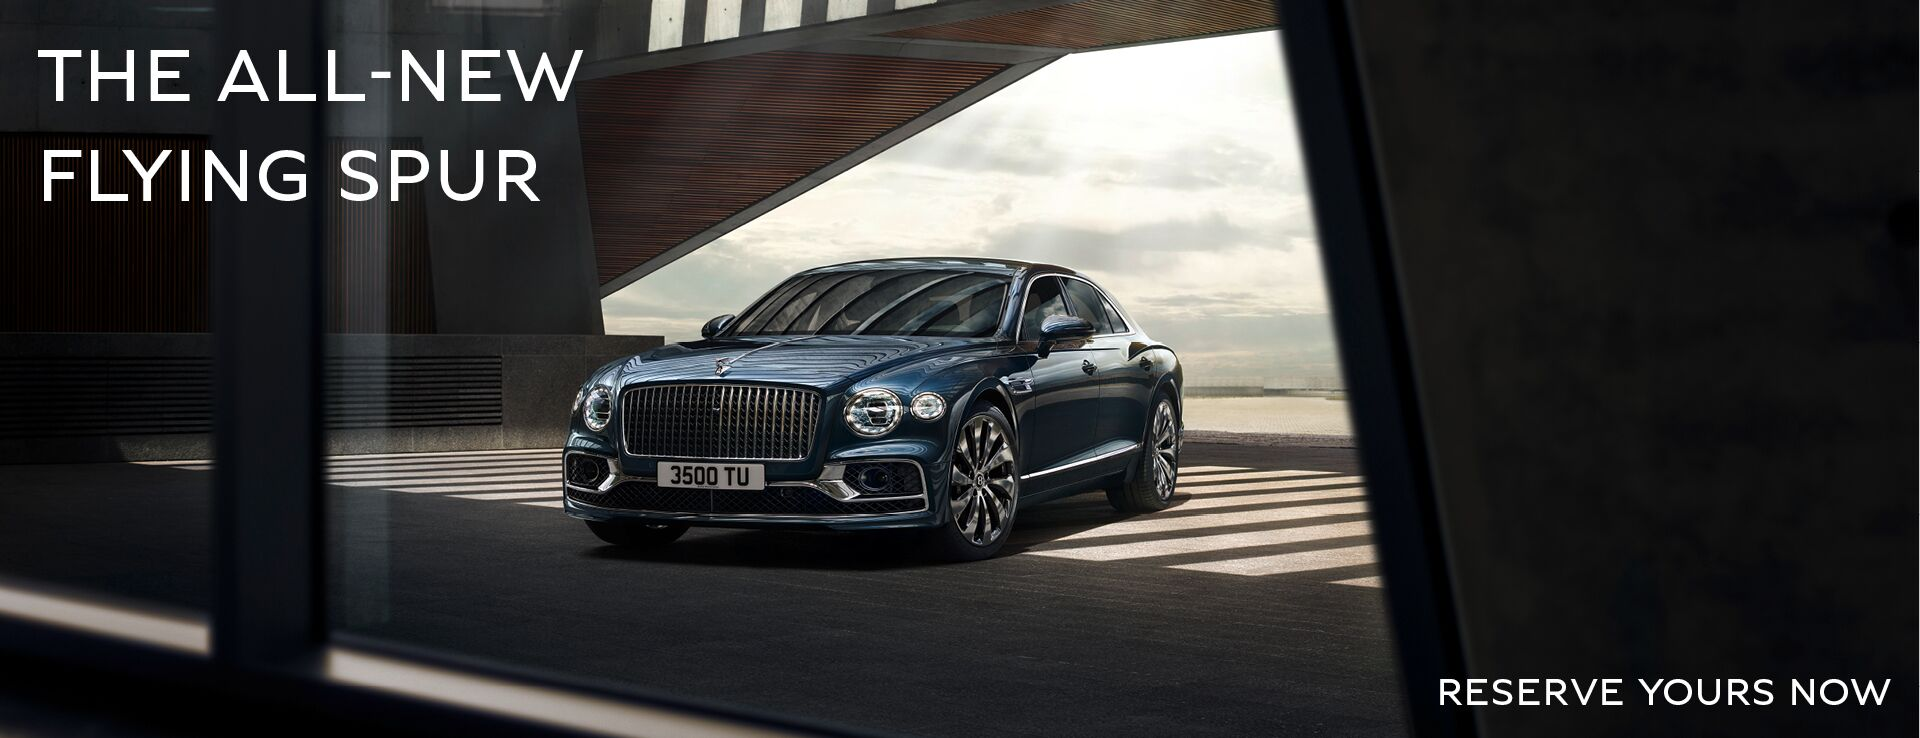 The All-New Flying Spur